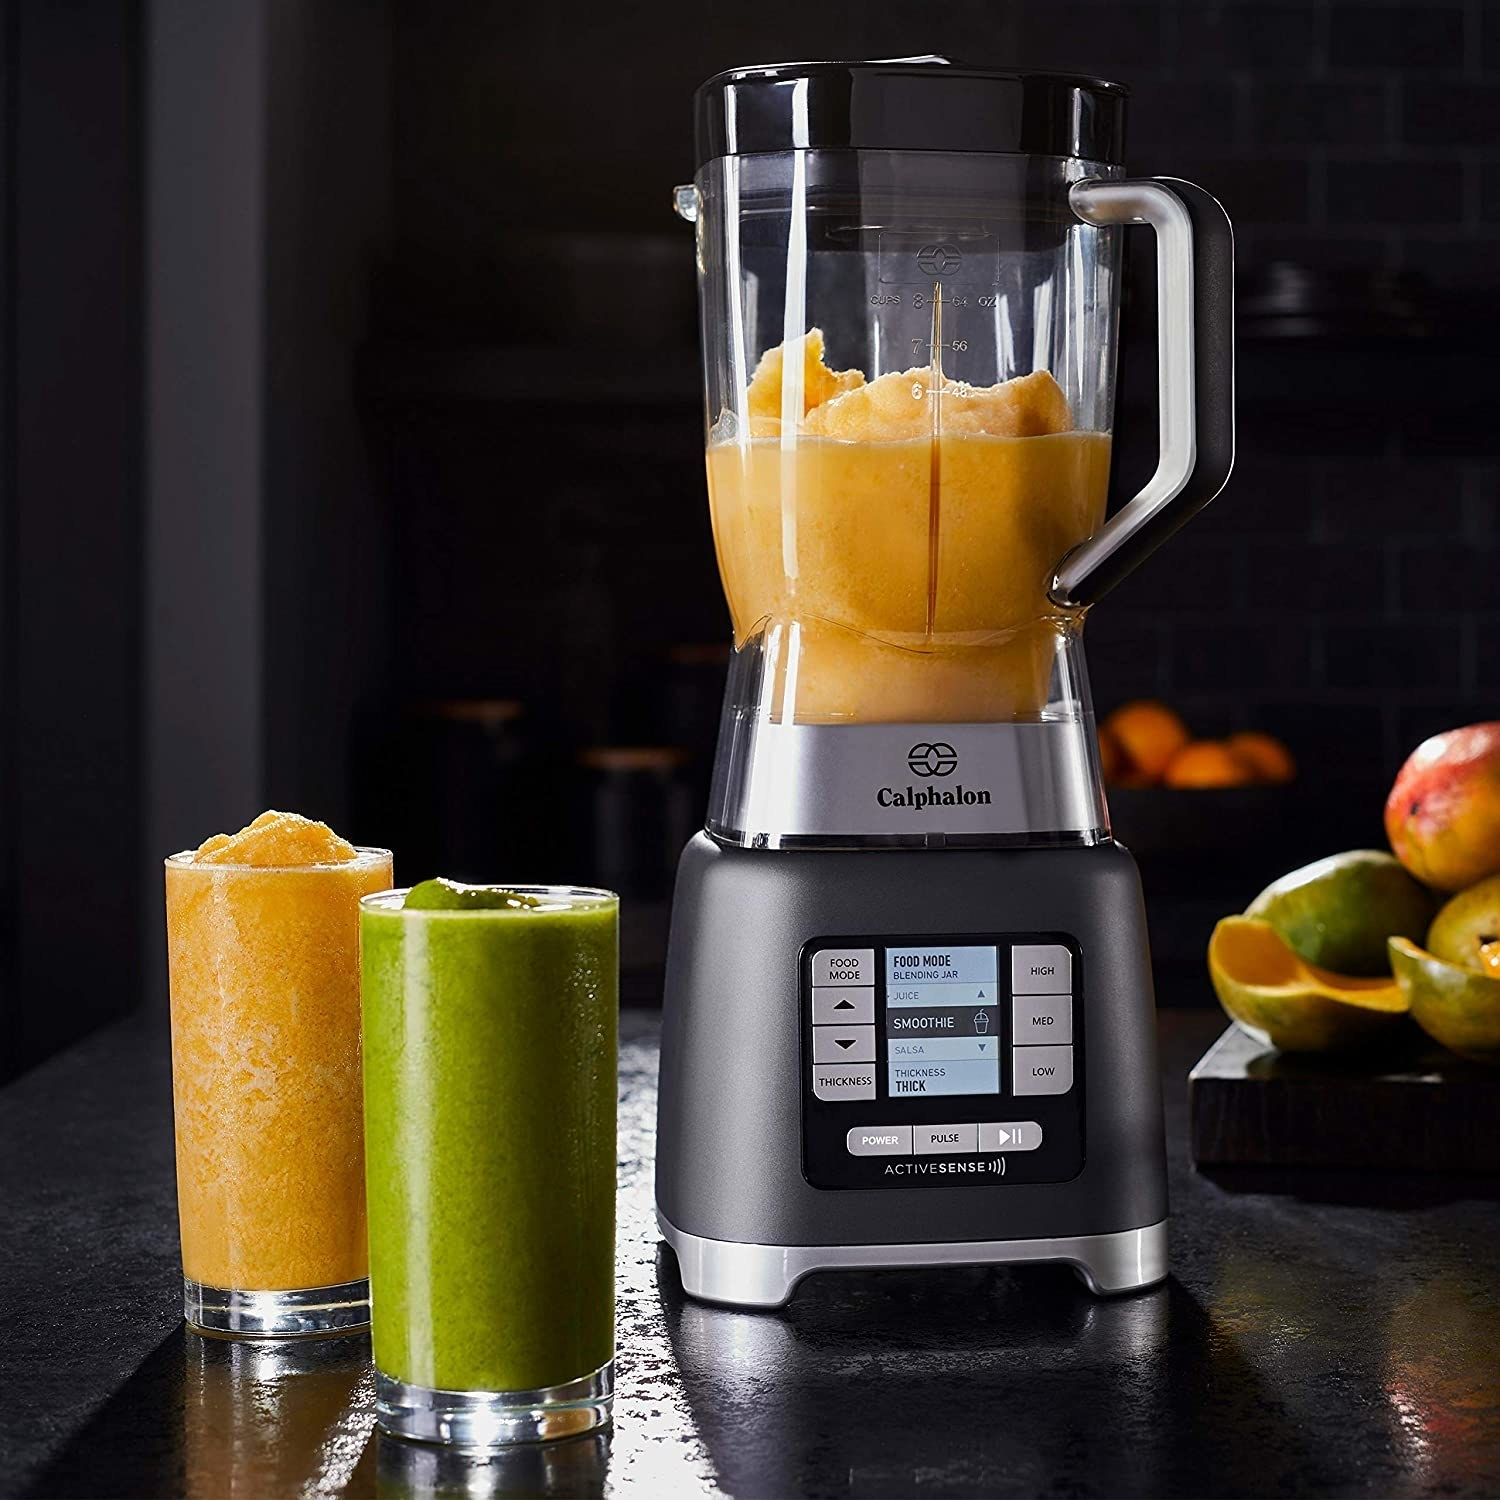 A blender filled with a smoothie with two glasses of smoothie next to it